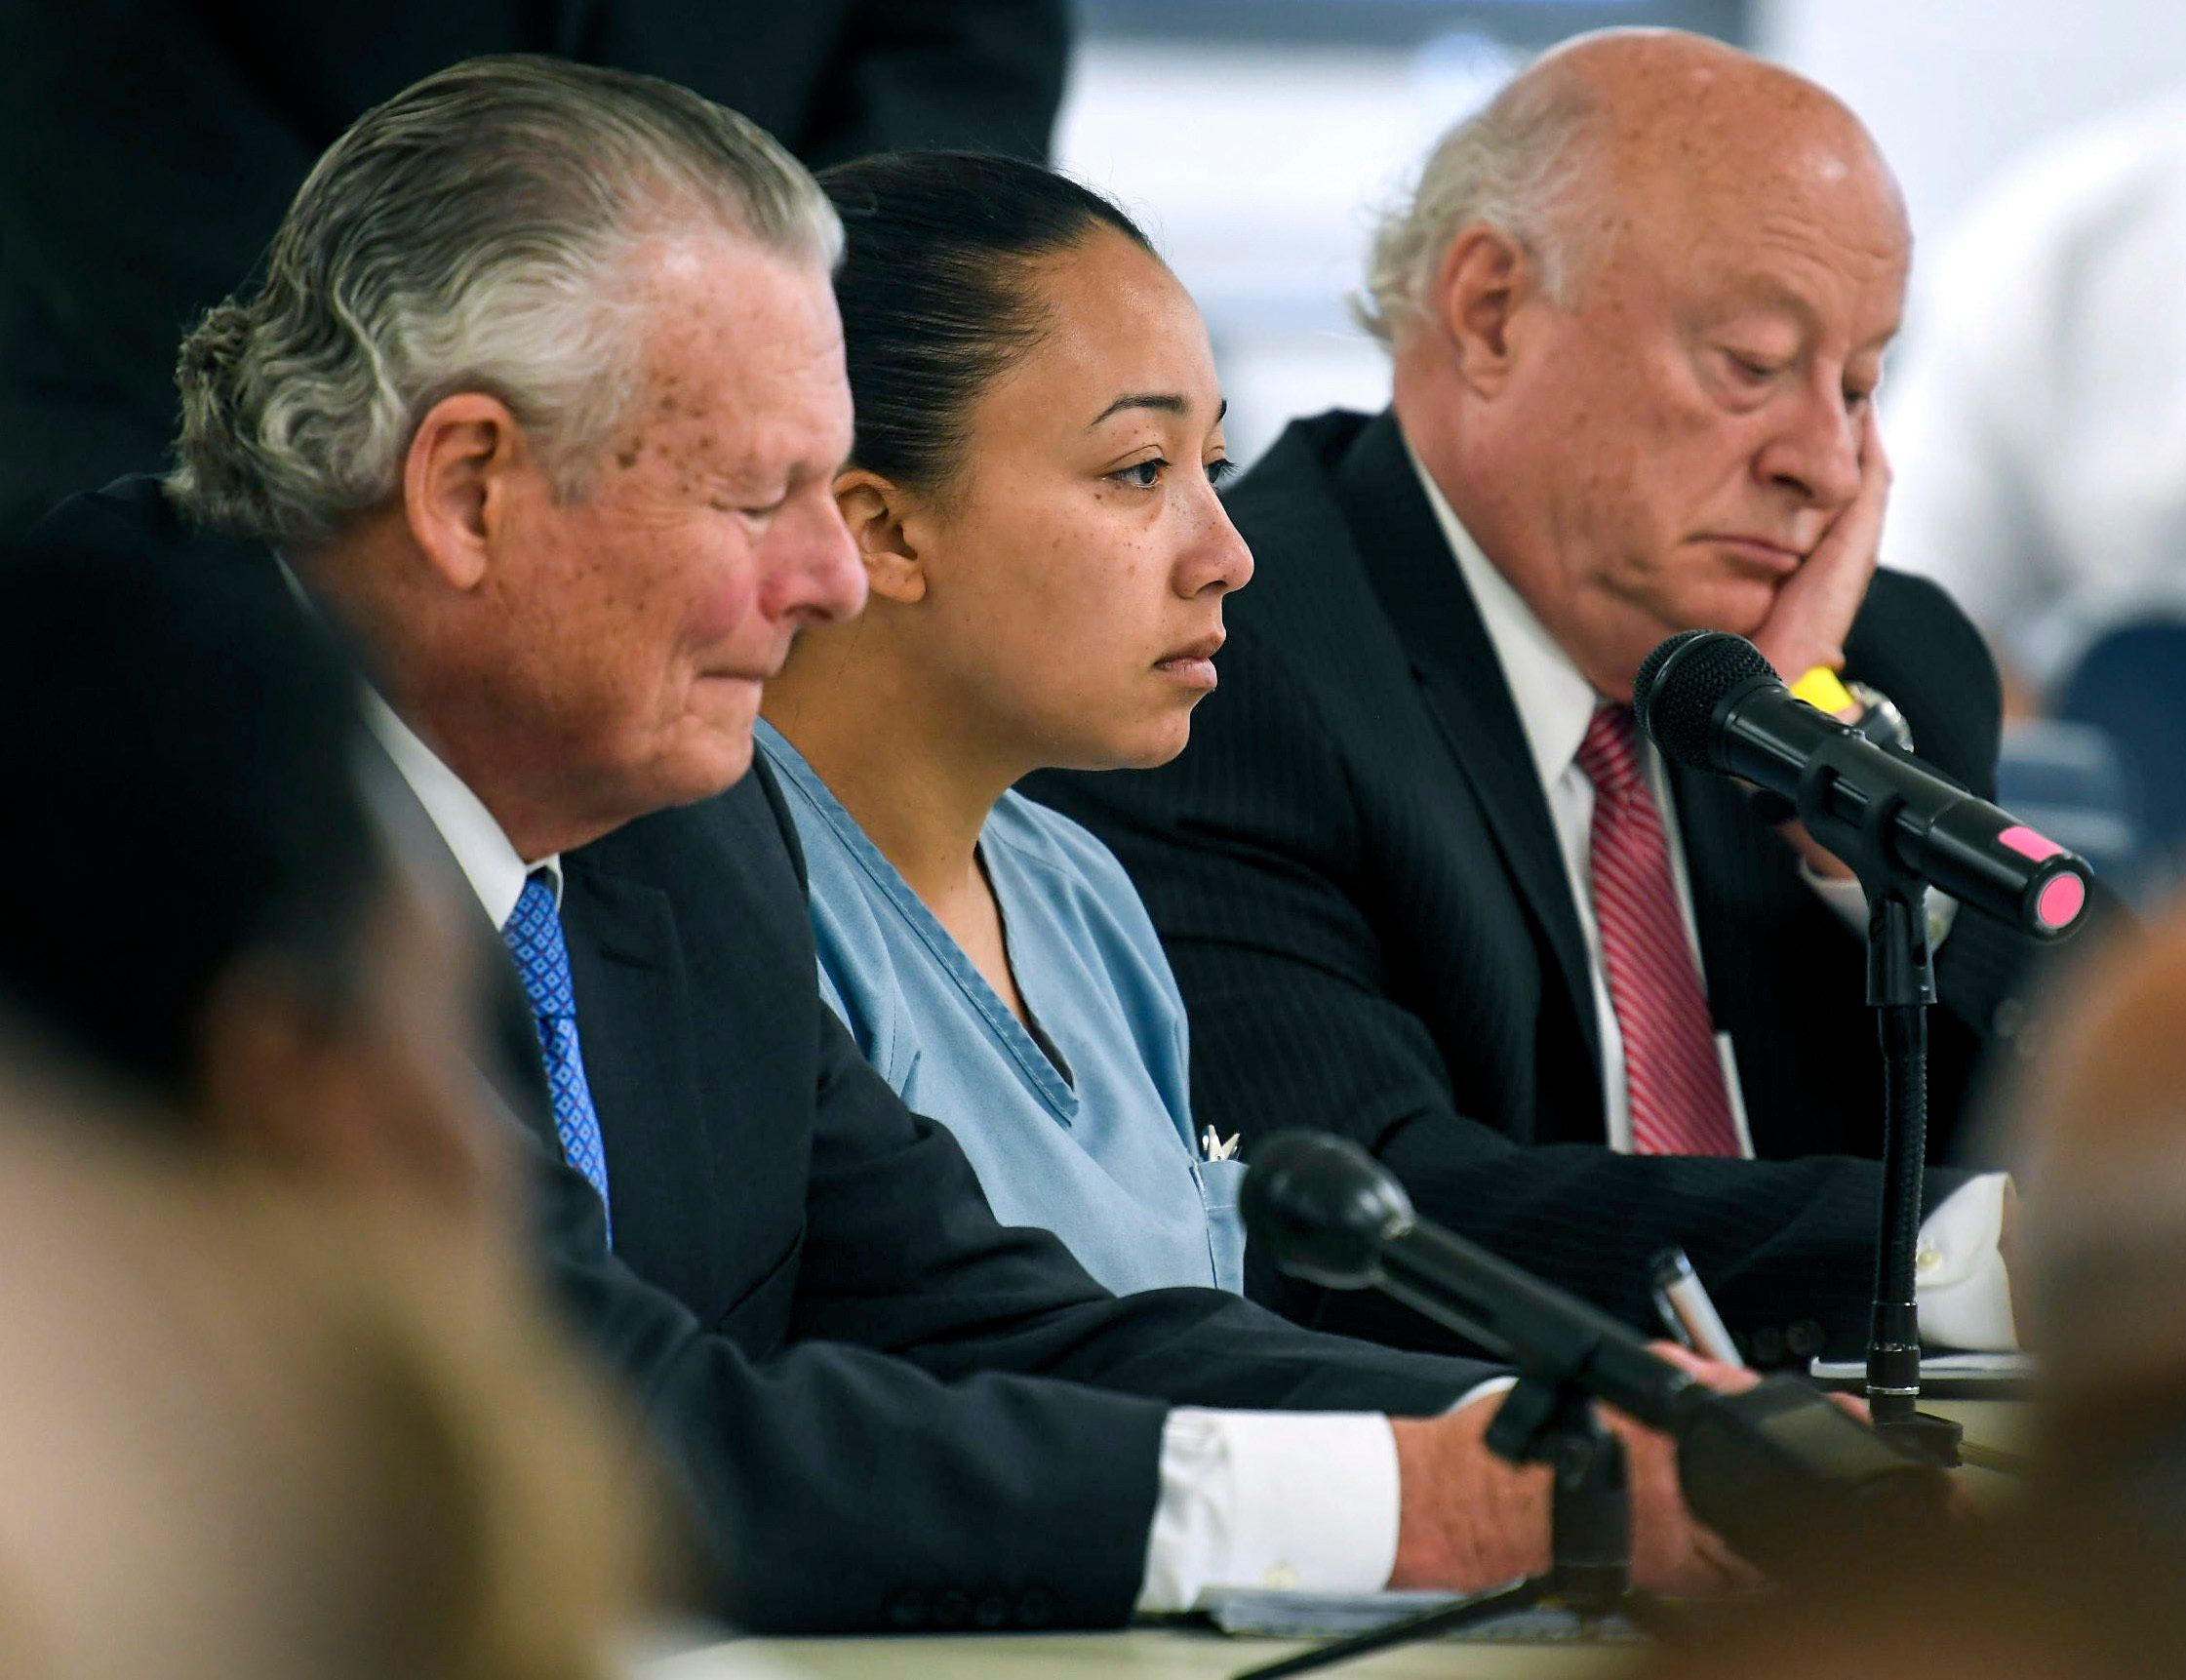 Cyntoia Brown sits between her council Charles Bone, left and Houston Gordon, right, as they listen to the parole boards split decision in her clemency hearing at the Tennessee Prison for Women in Nashville, Tenn., Wednesday, May 23, 2018. A six-member Tennessee Board of Parole is divided on whether to release Brown, who is serving a life sentence, for killing a man when she was a 16-year-old prostitute. (Lacy Atkins/The Tennessean via AP, Pool)